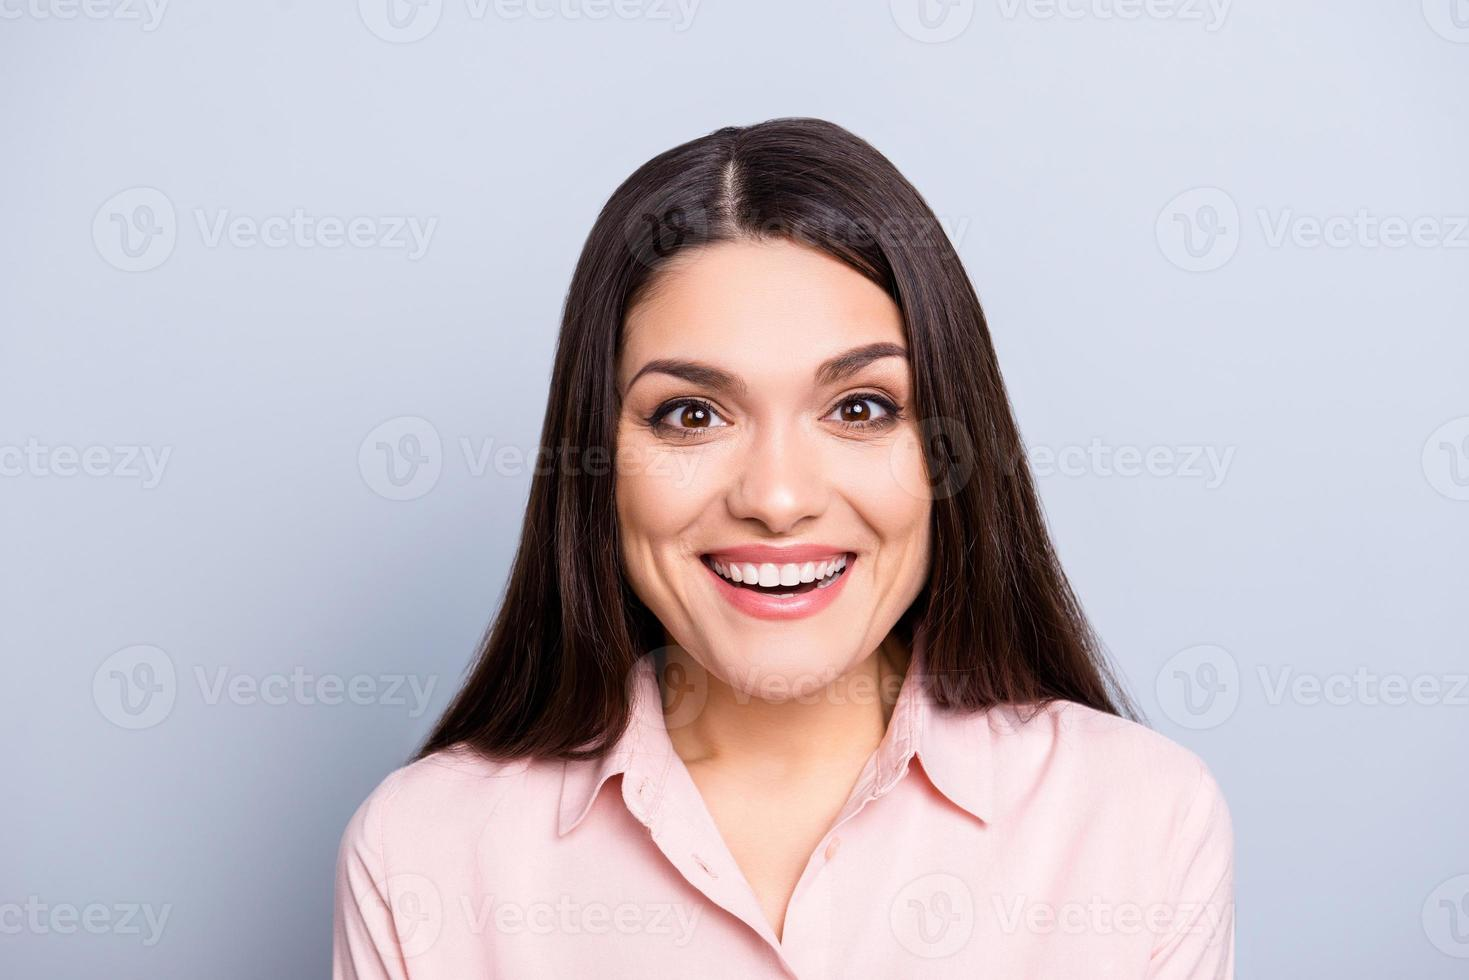 Portrait of pretty, charming, cute, nice, gorgeous woman in classic shirt laughing with healthy white beaming smile isolated on grey background looking at camera photo